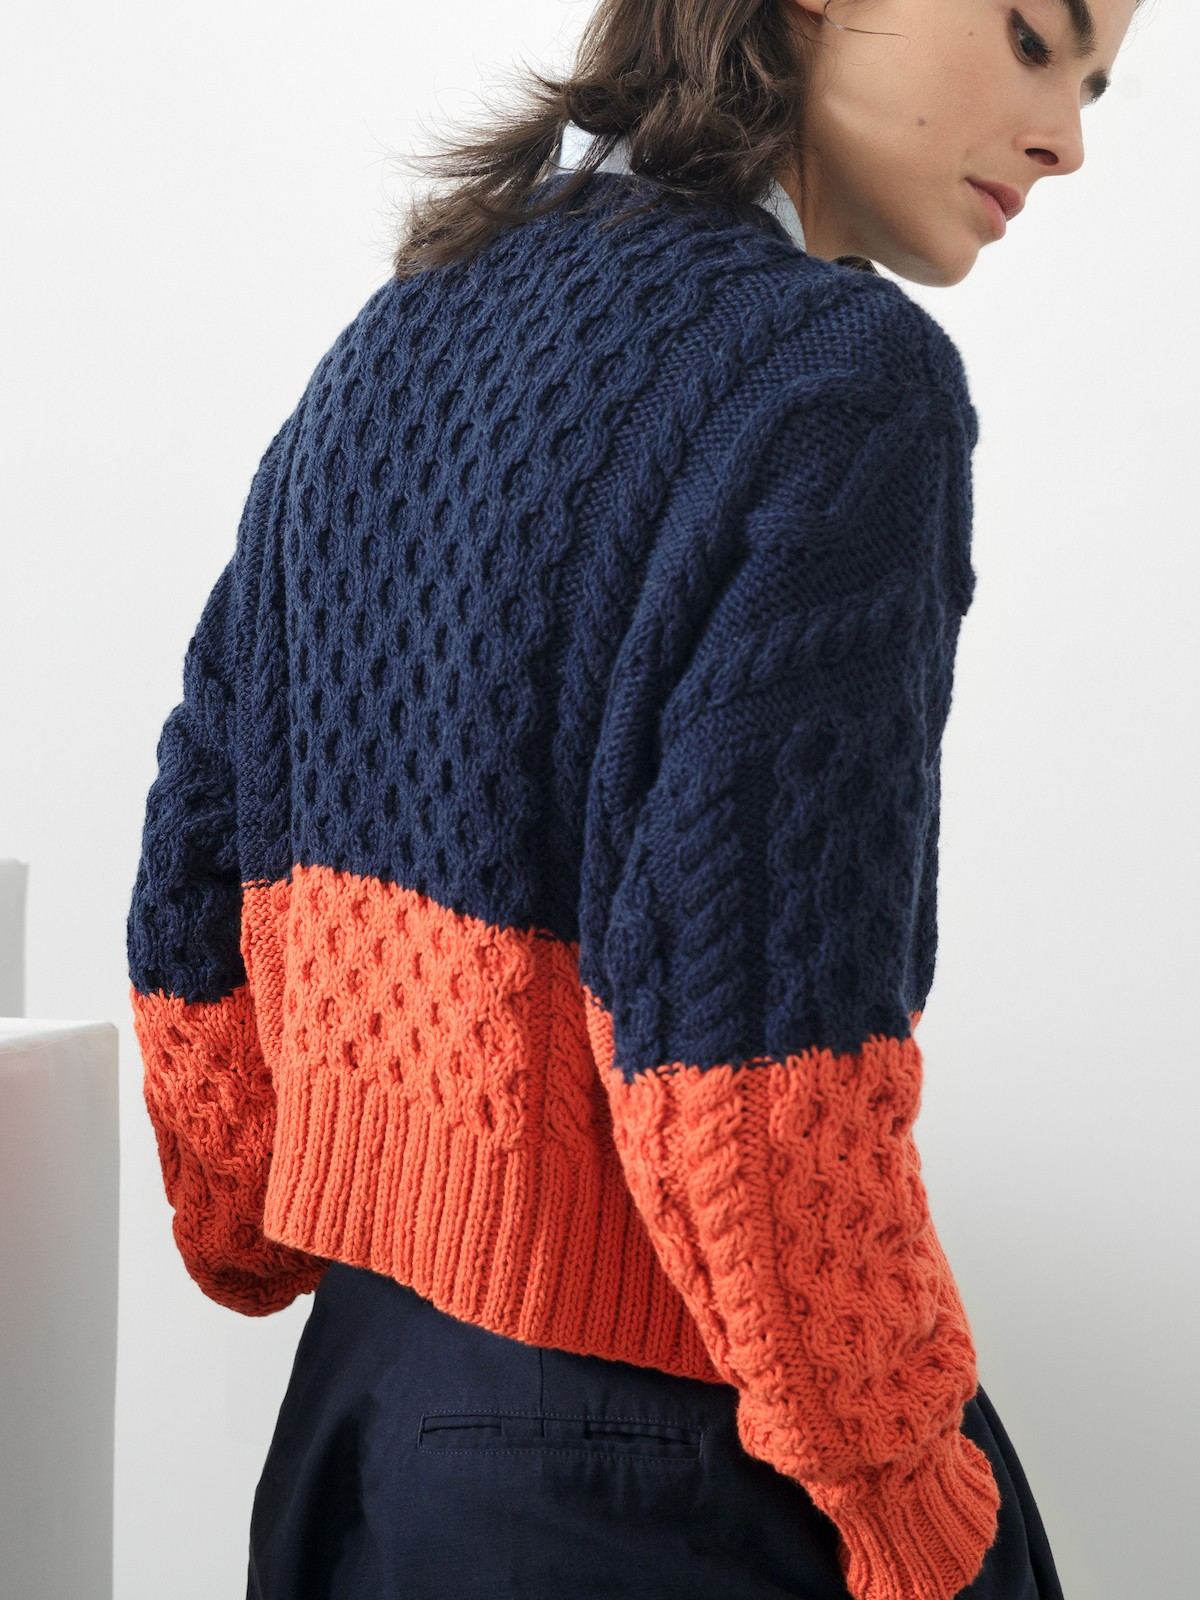 Cables cardigan